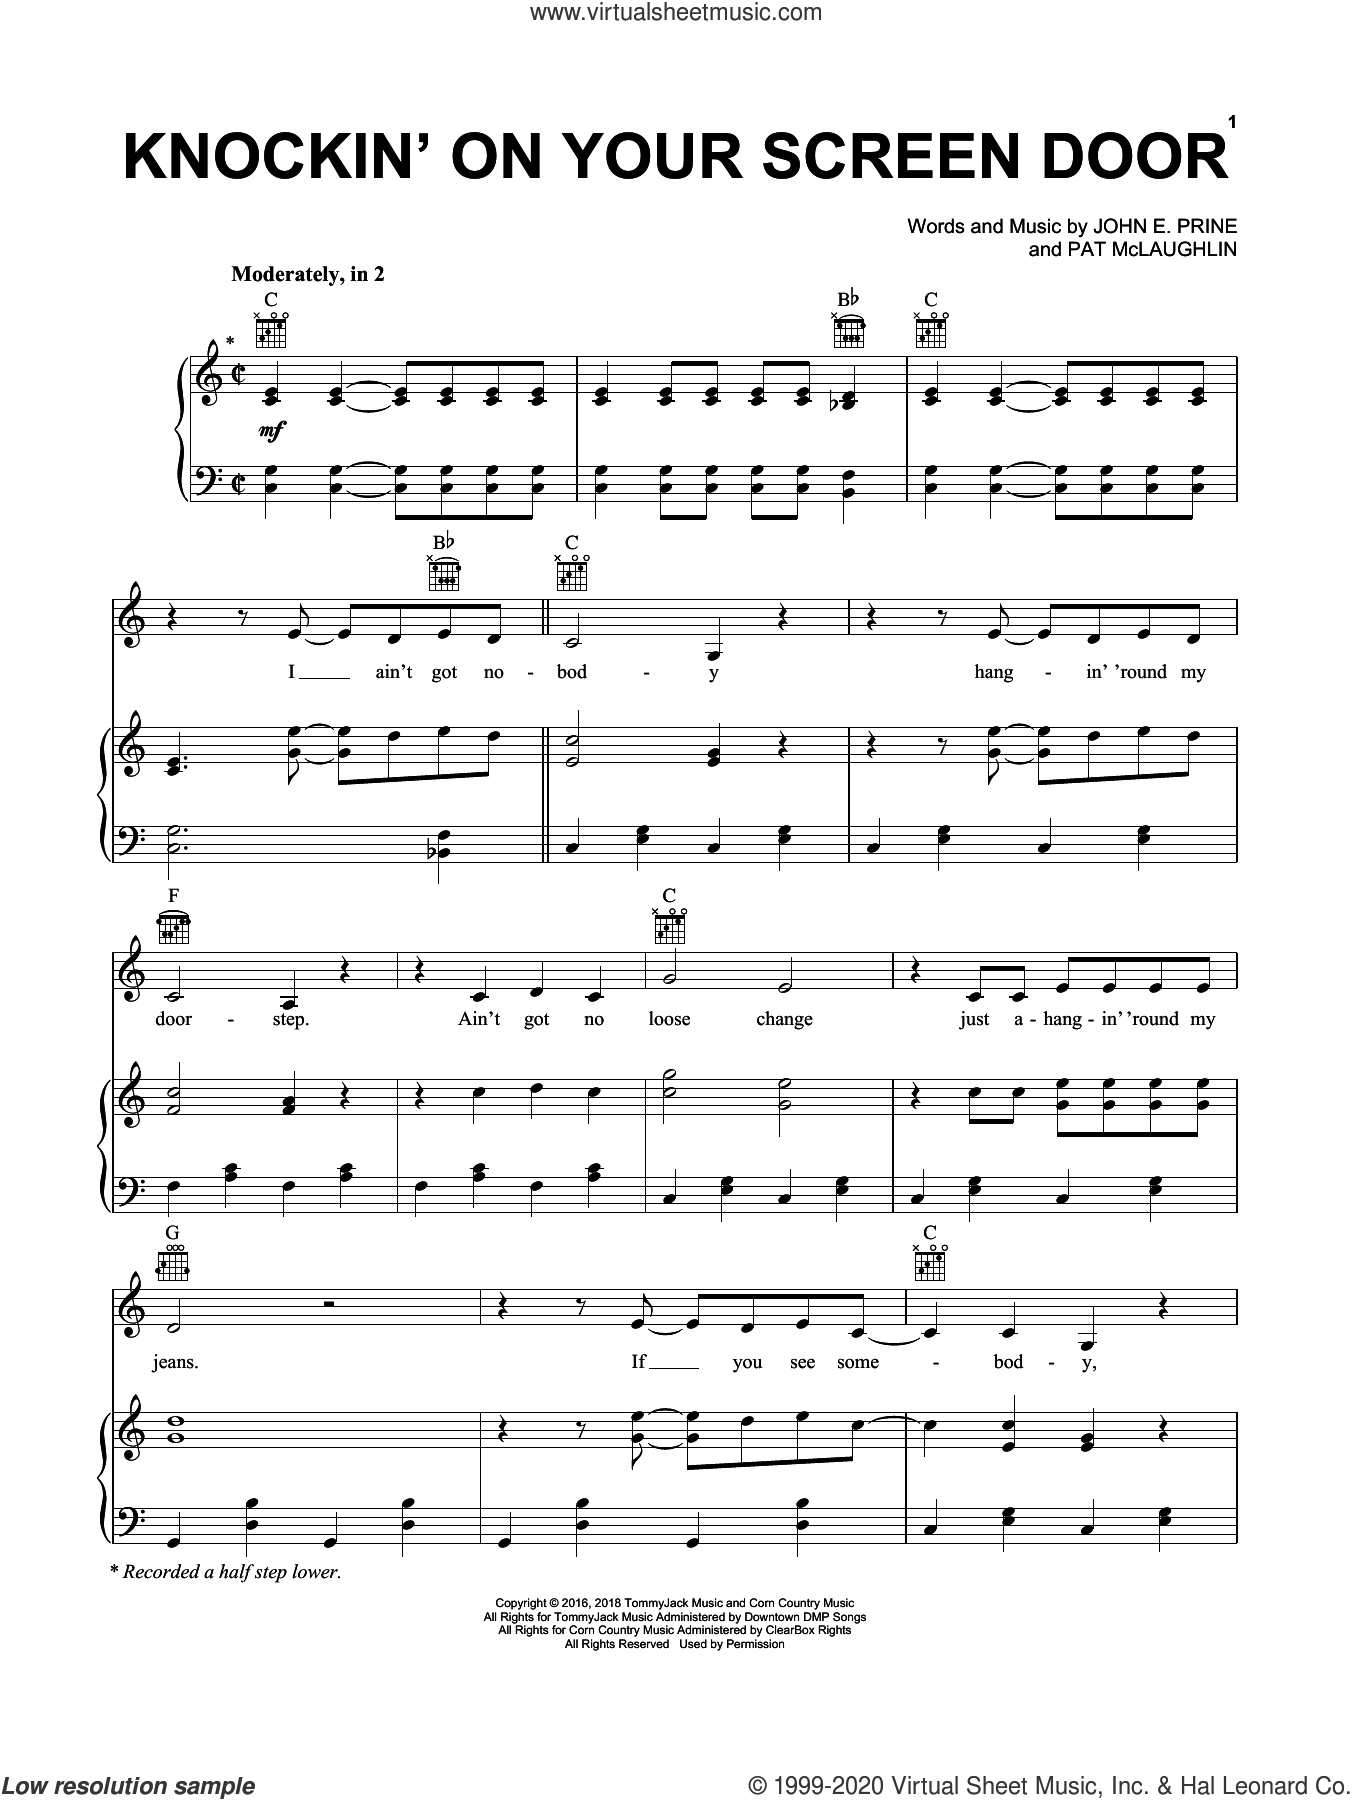 Knockin' On Your Screen Door sheet music for voice, piano or guitar by John Prine, John E. Prine and Pat McLaughlin, intermediate skill level